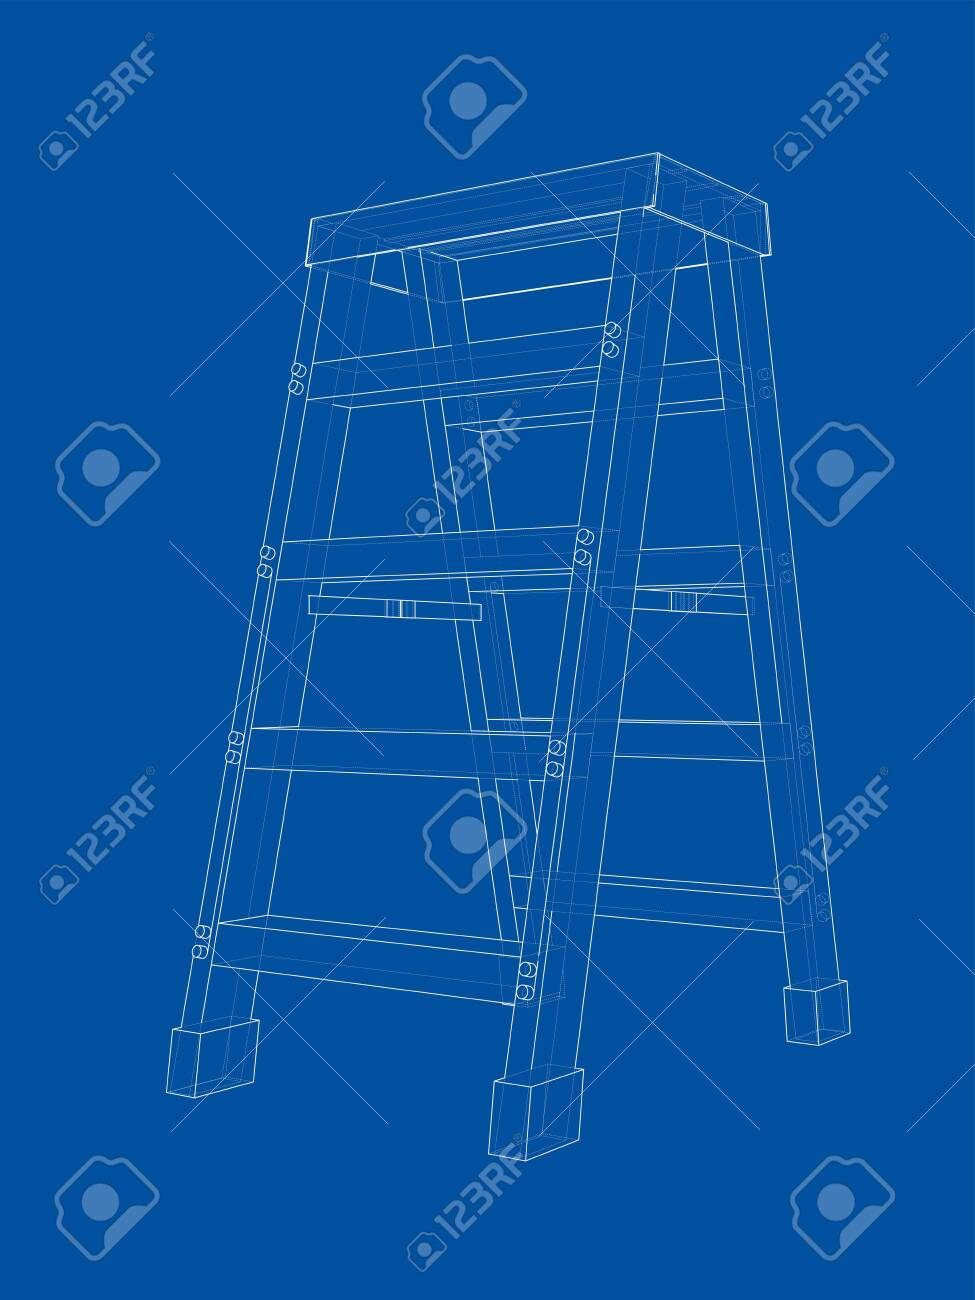 Pleasing Outline Household Steps Vector Rendering Of 3D Wire Frame Style Beatyapartments Chair Design Images Beatyapartmentscom